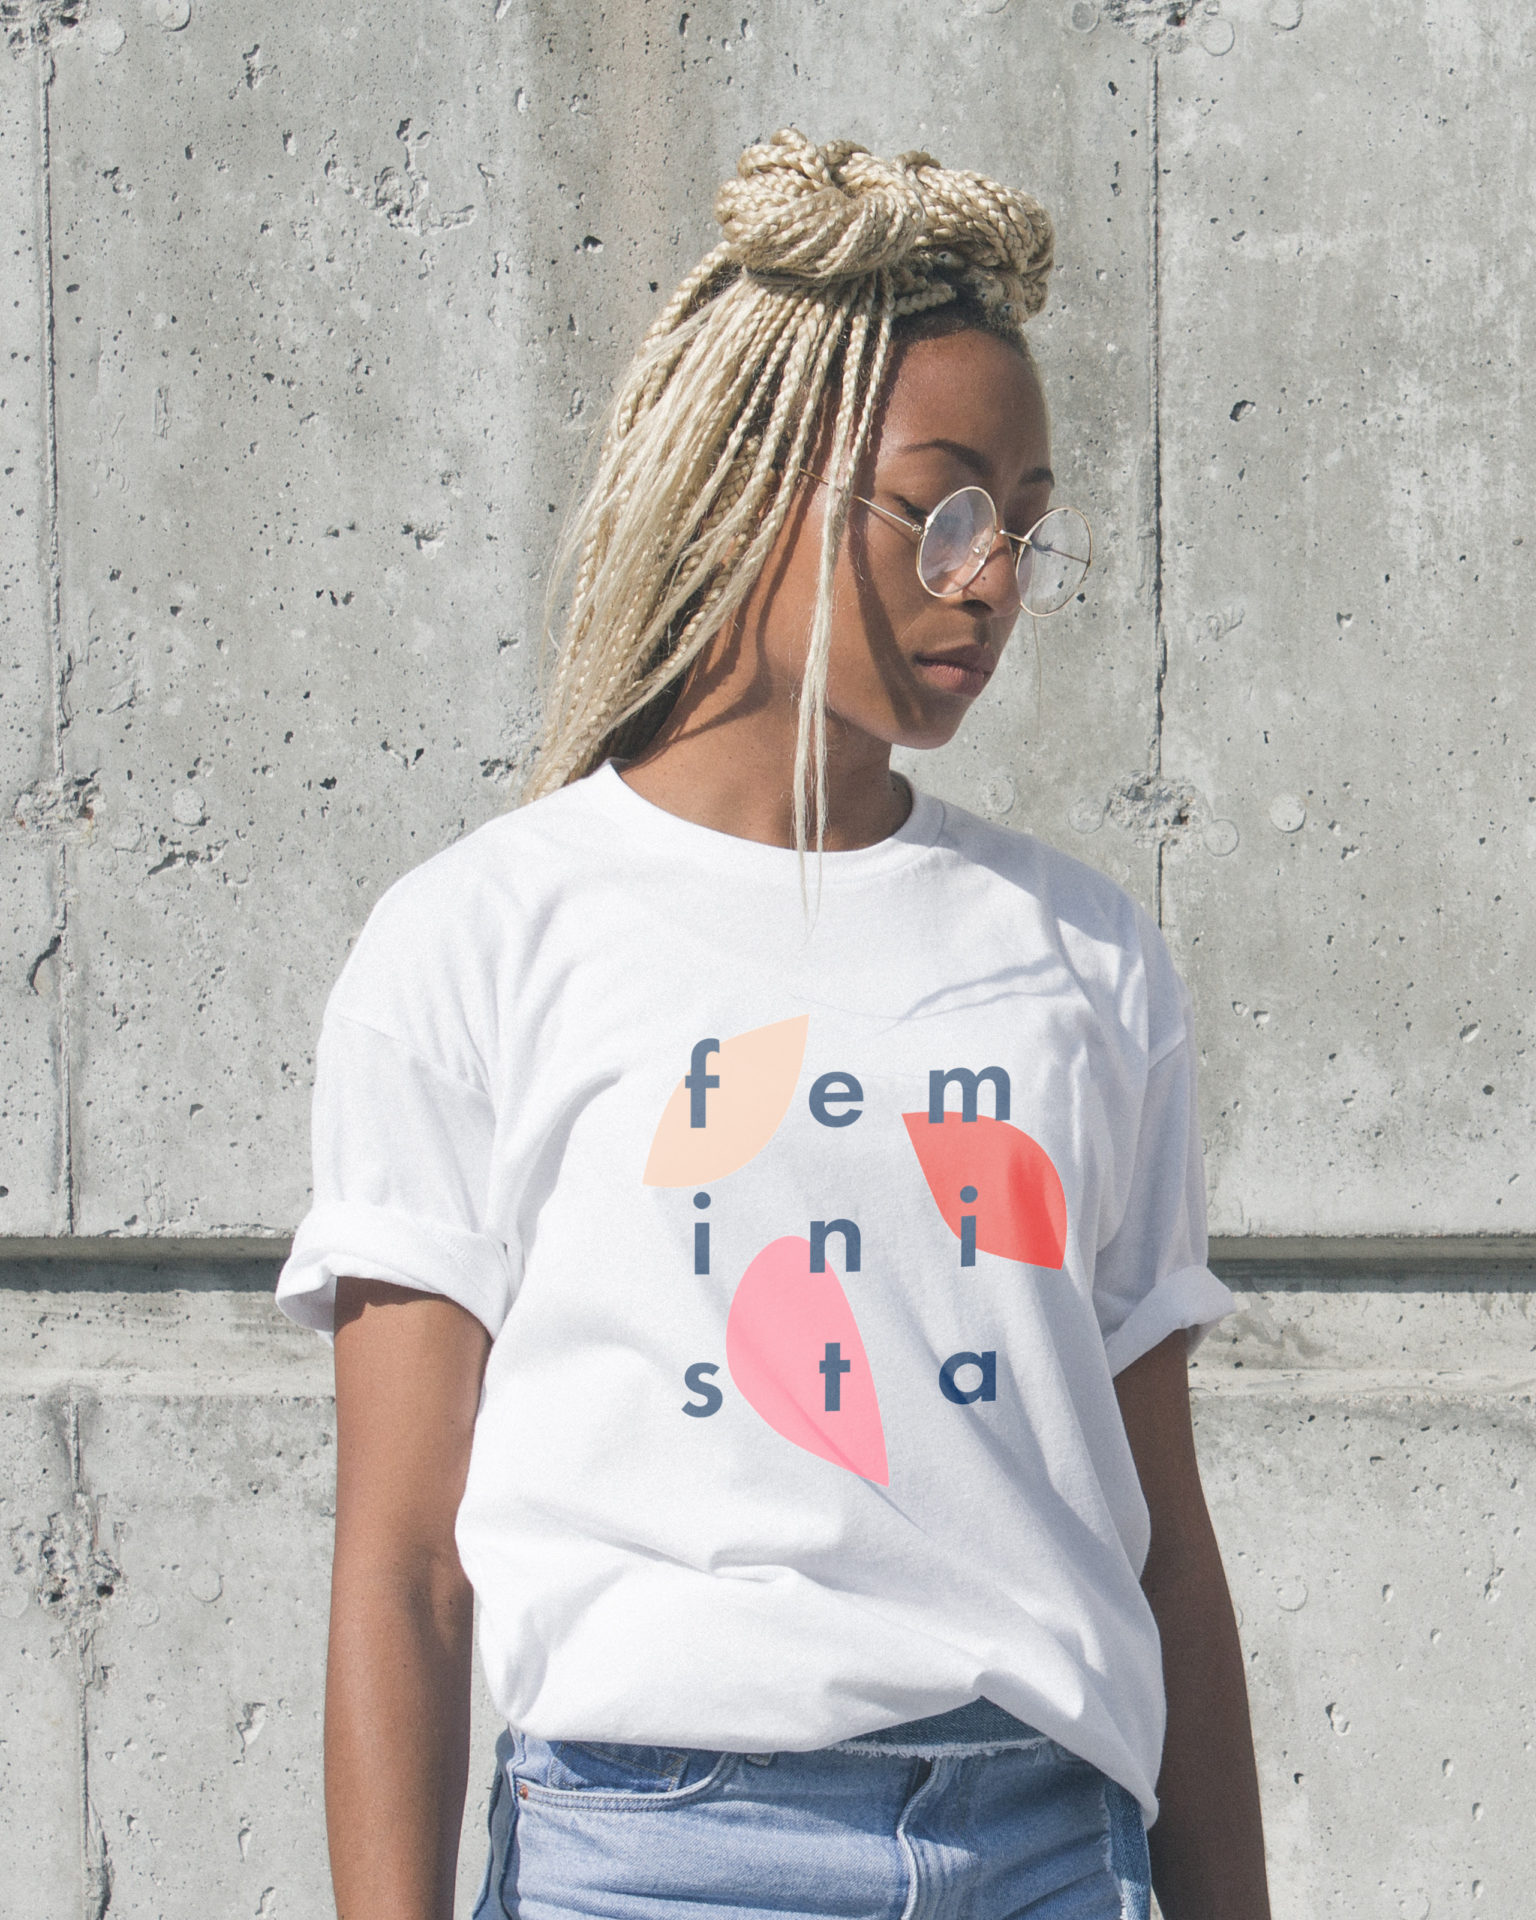 T-Shirt Design Trends For 2018